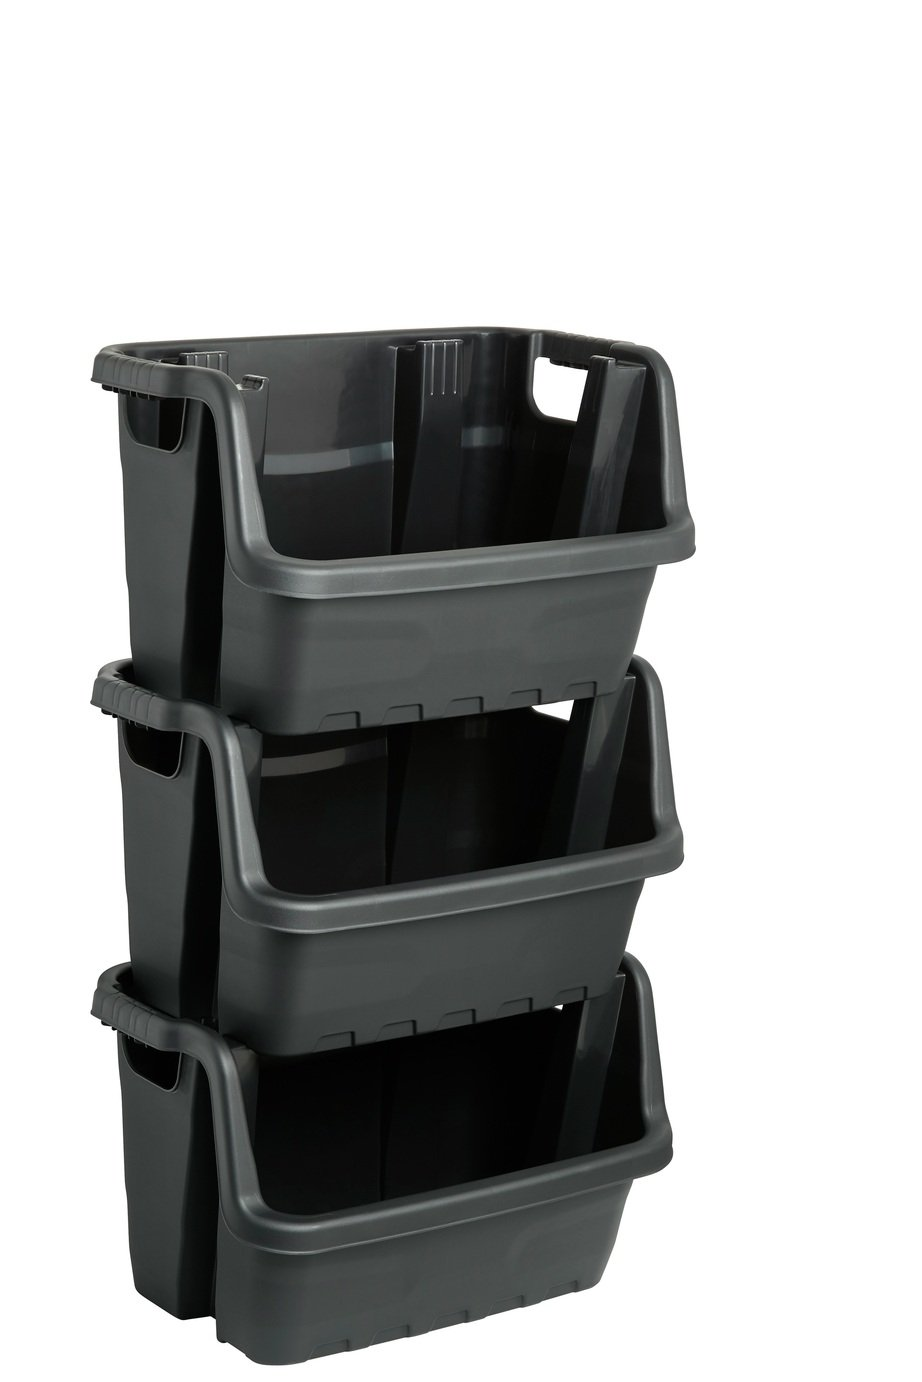 Strata 55 Litre Heavy Duty Stacking Crate - Set of 3